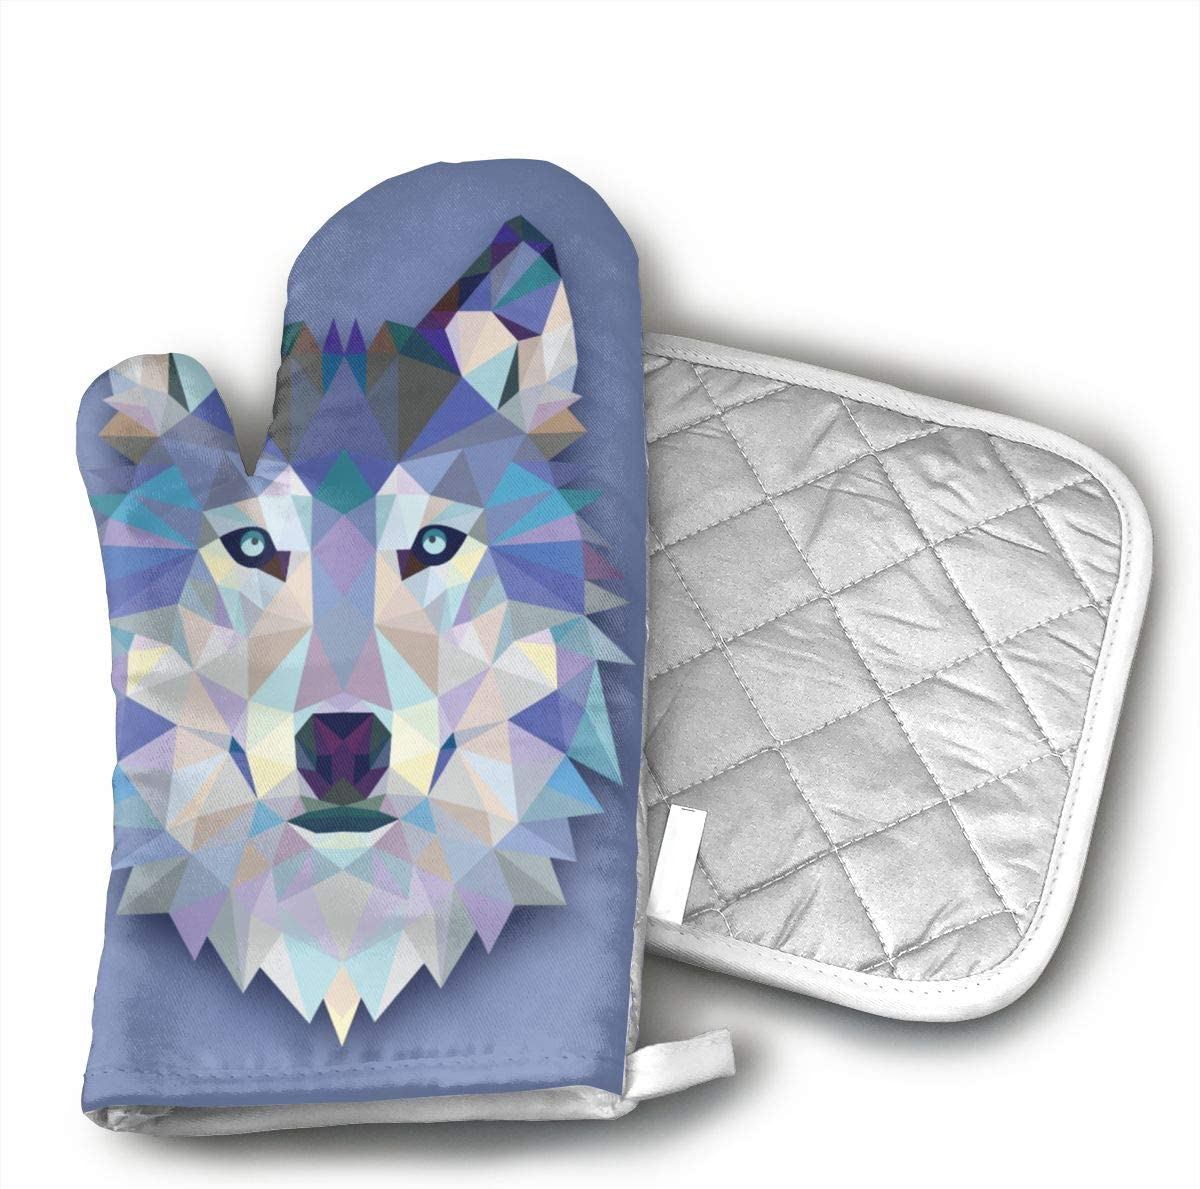 FGXQN Wolf Oven Gloves Non-Slip Kitchen Oven Mitts Heat Resistant Cooking Gloves for Cooking, Baking, Barbecue Potholder,